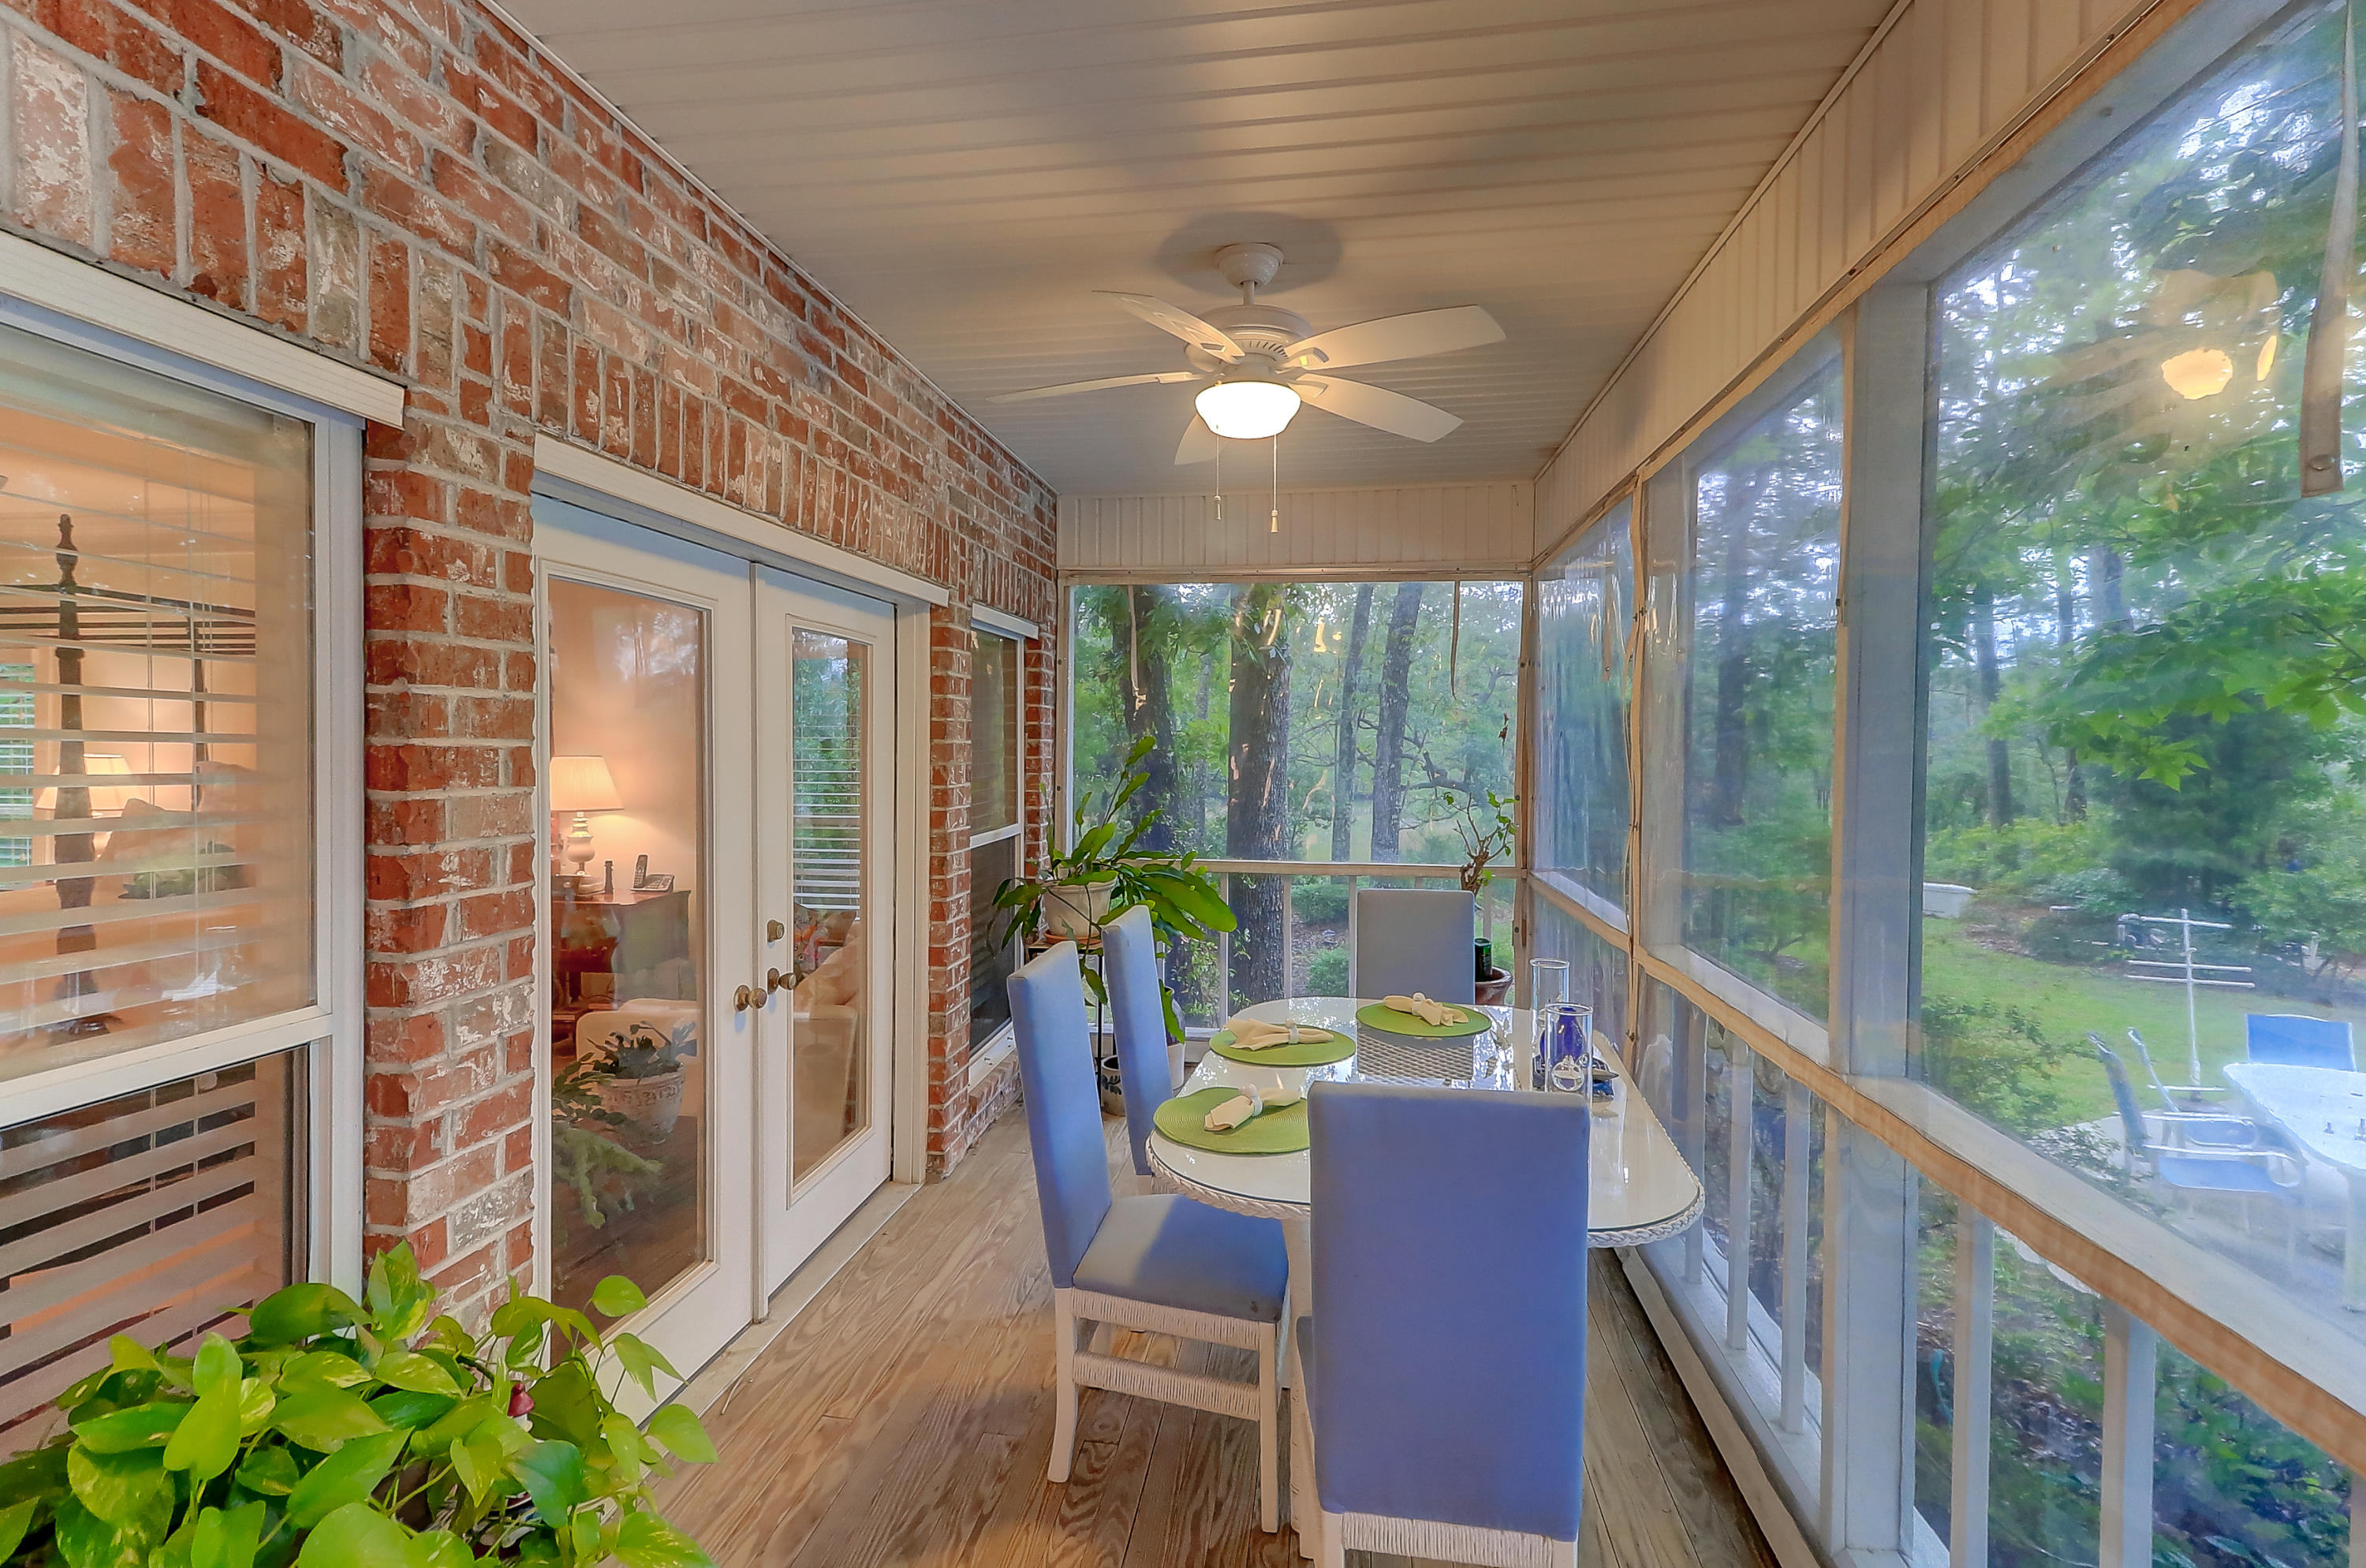 Cainhoy Landing Homes For Sale - 122 Cainhoy Landing, Charleston, SC - 26